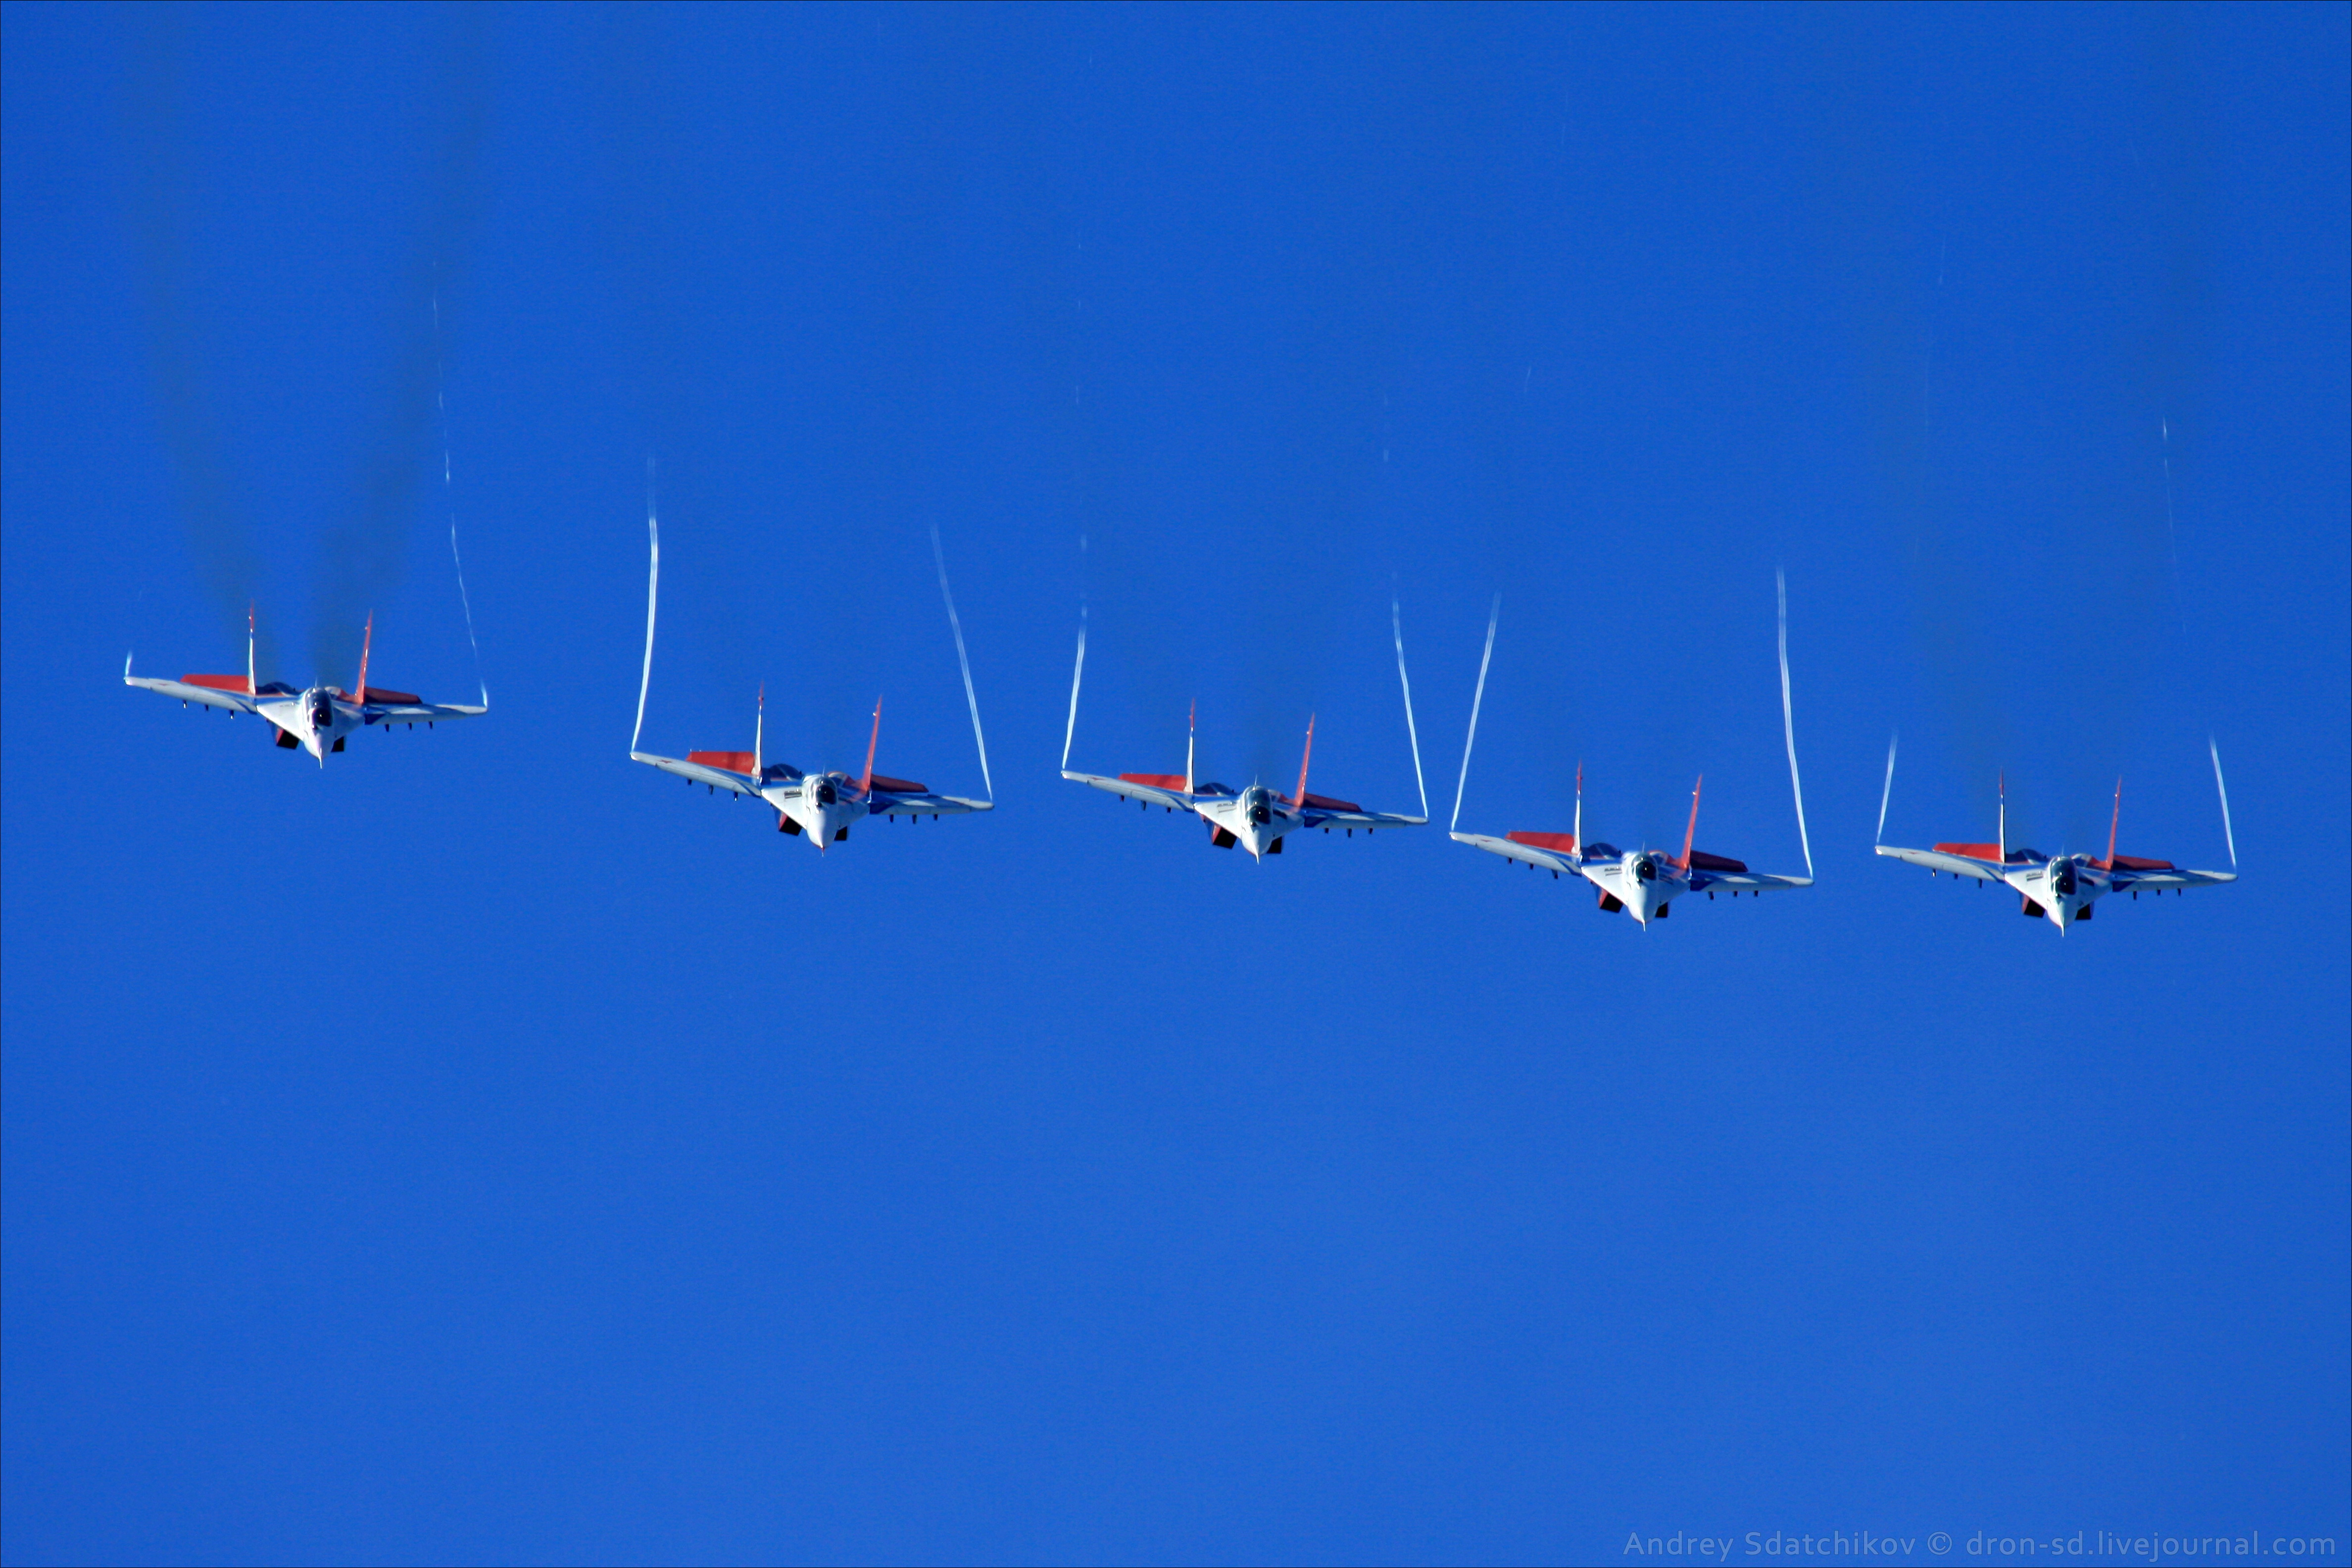 MAKS-2015 Air Show: Photos and Discussion - Page 3 0_1226a1_11c8a62a_orig